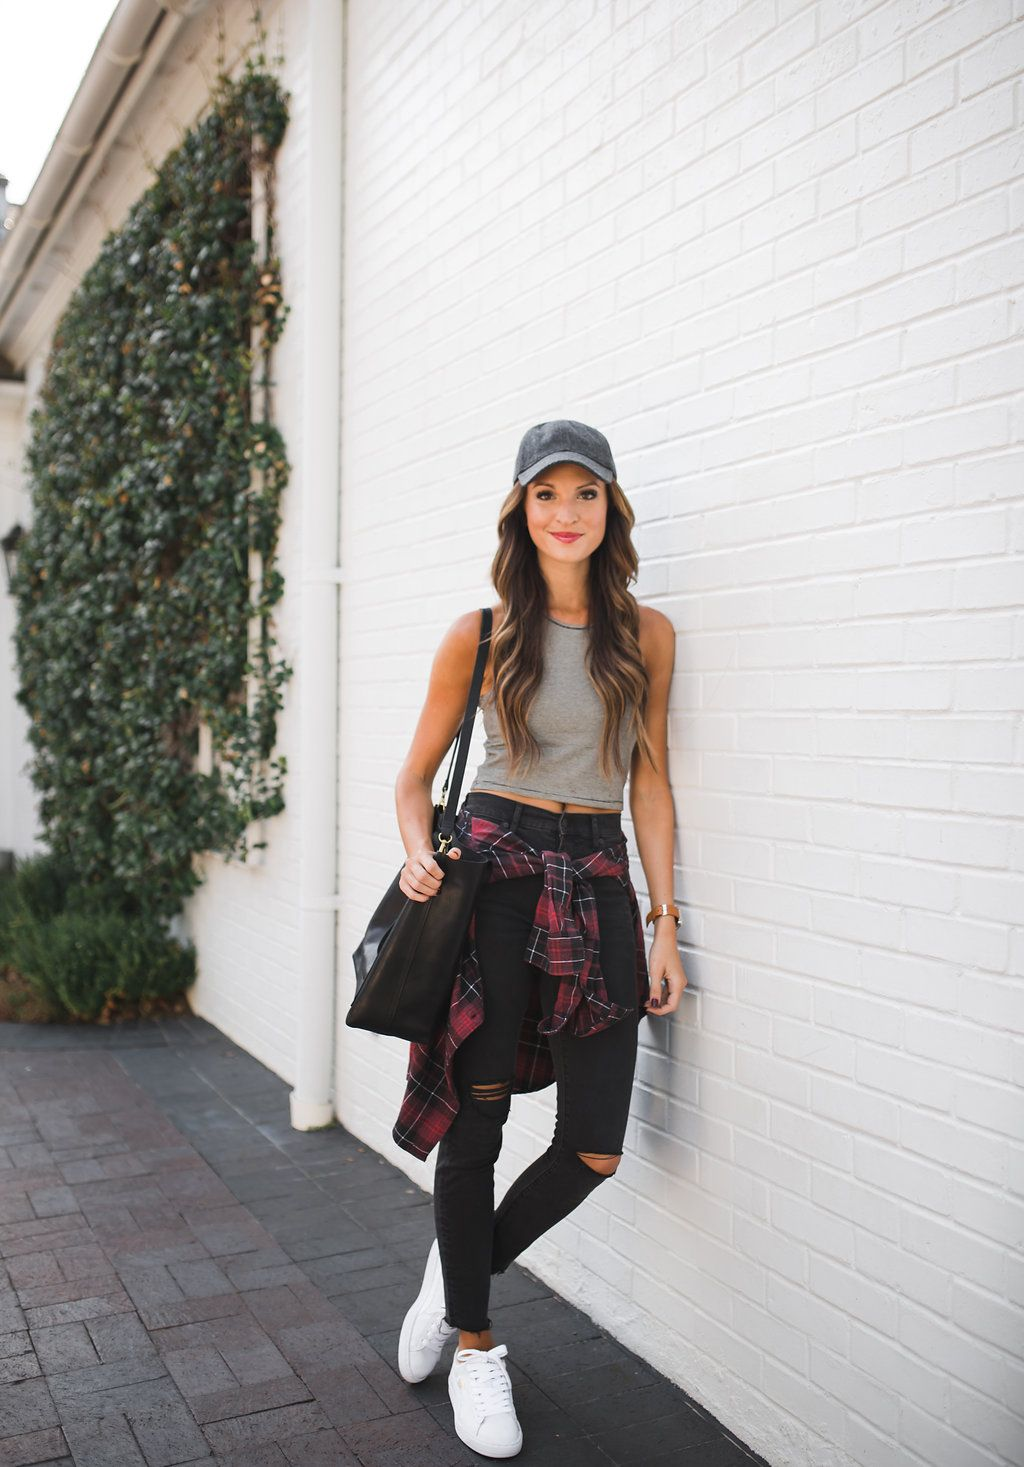 ef5f0725b80d6 Striped tank top + high waisted distressed skinny jeans + flannel shirt +  white sneakers + baseball cap